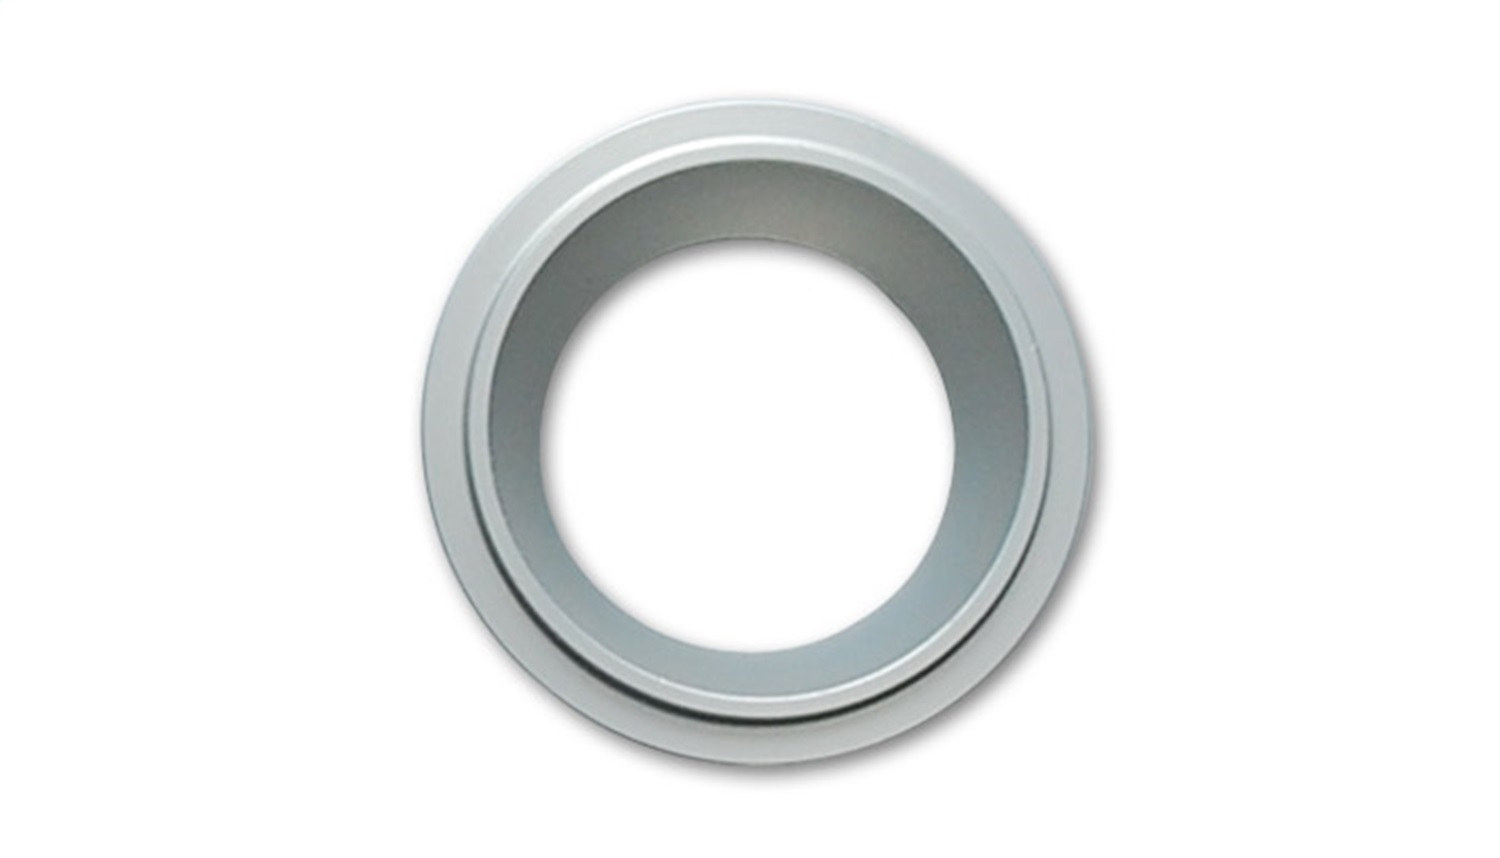 Vibrant Performance 10134 Aluminum Thread On Replacement Flange